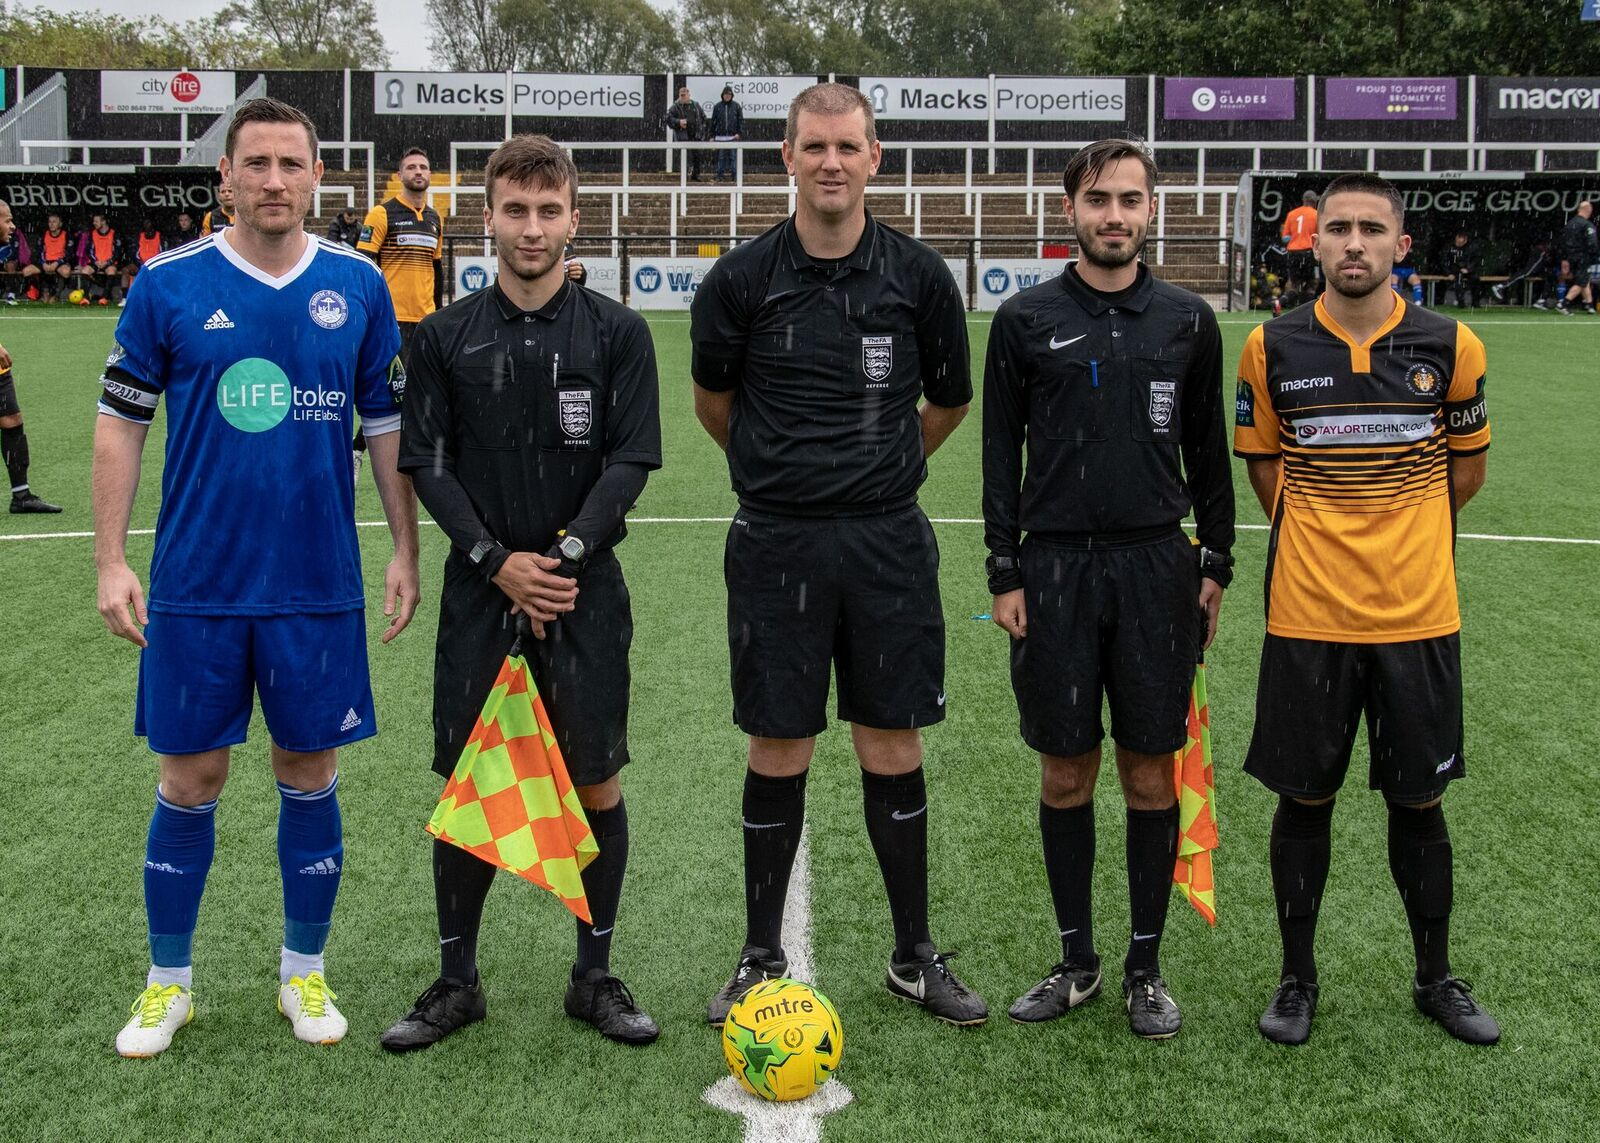 Captains Barney Williams and Chris Kinnear line up with officials before a dramatic afternoon. Pic Jon Hilliger